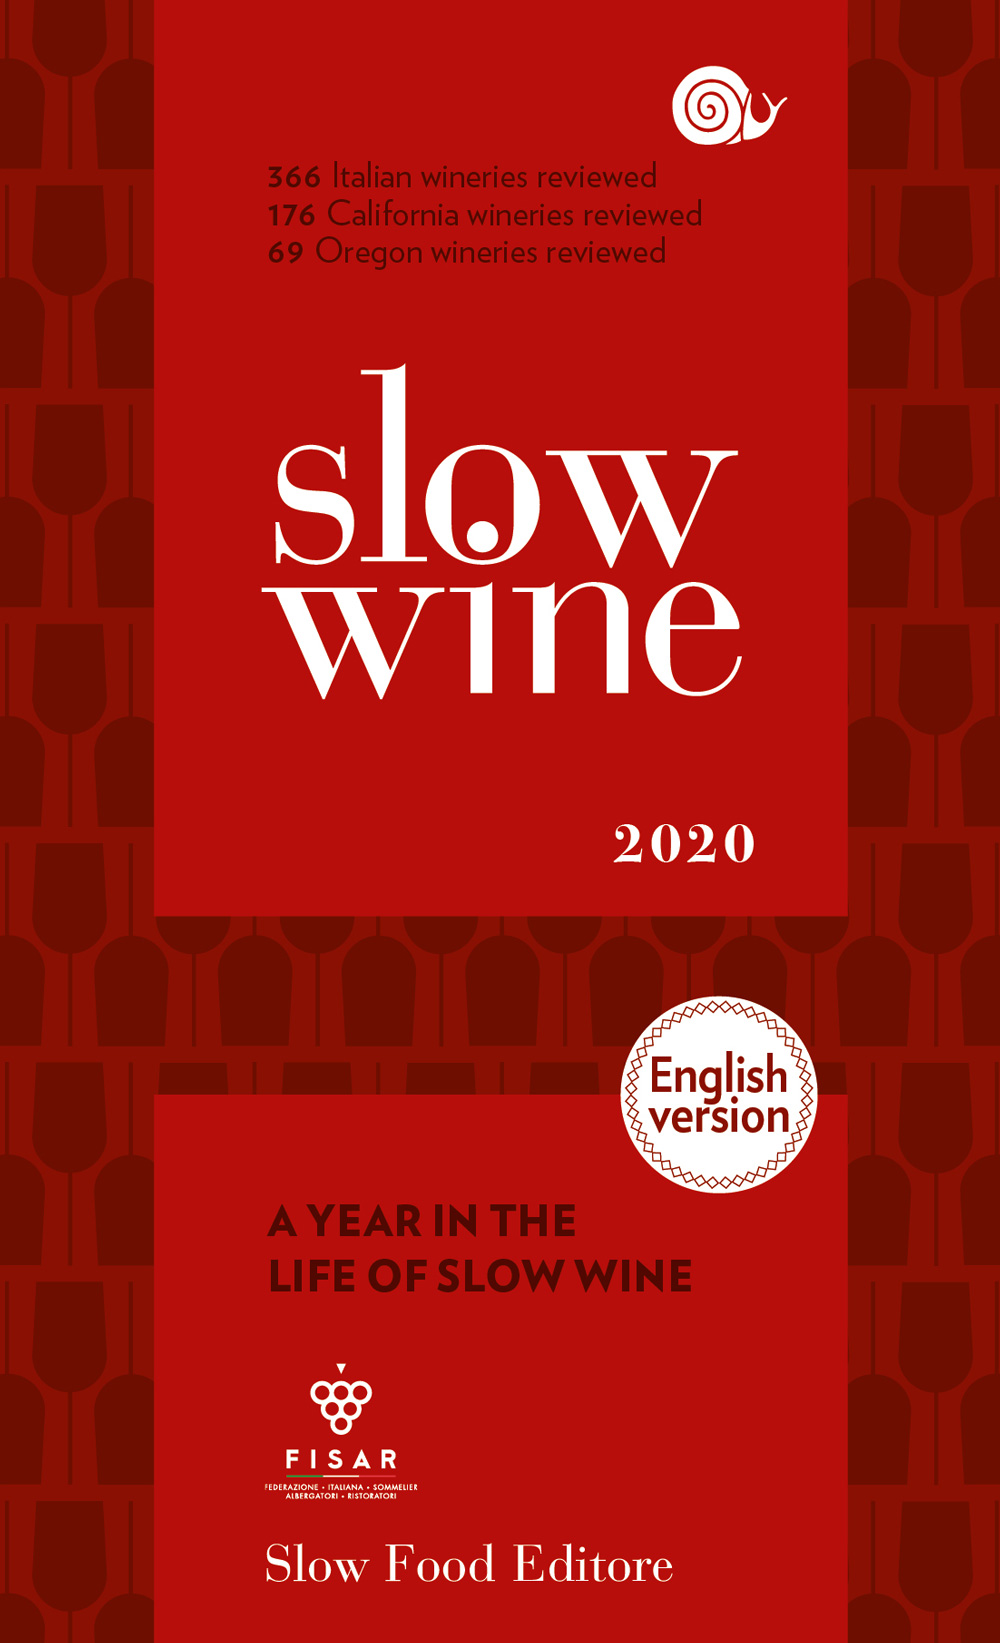 Slow Wine 2020 English version